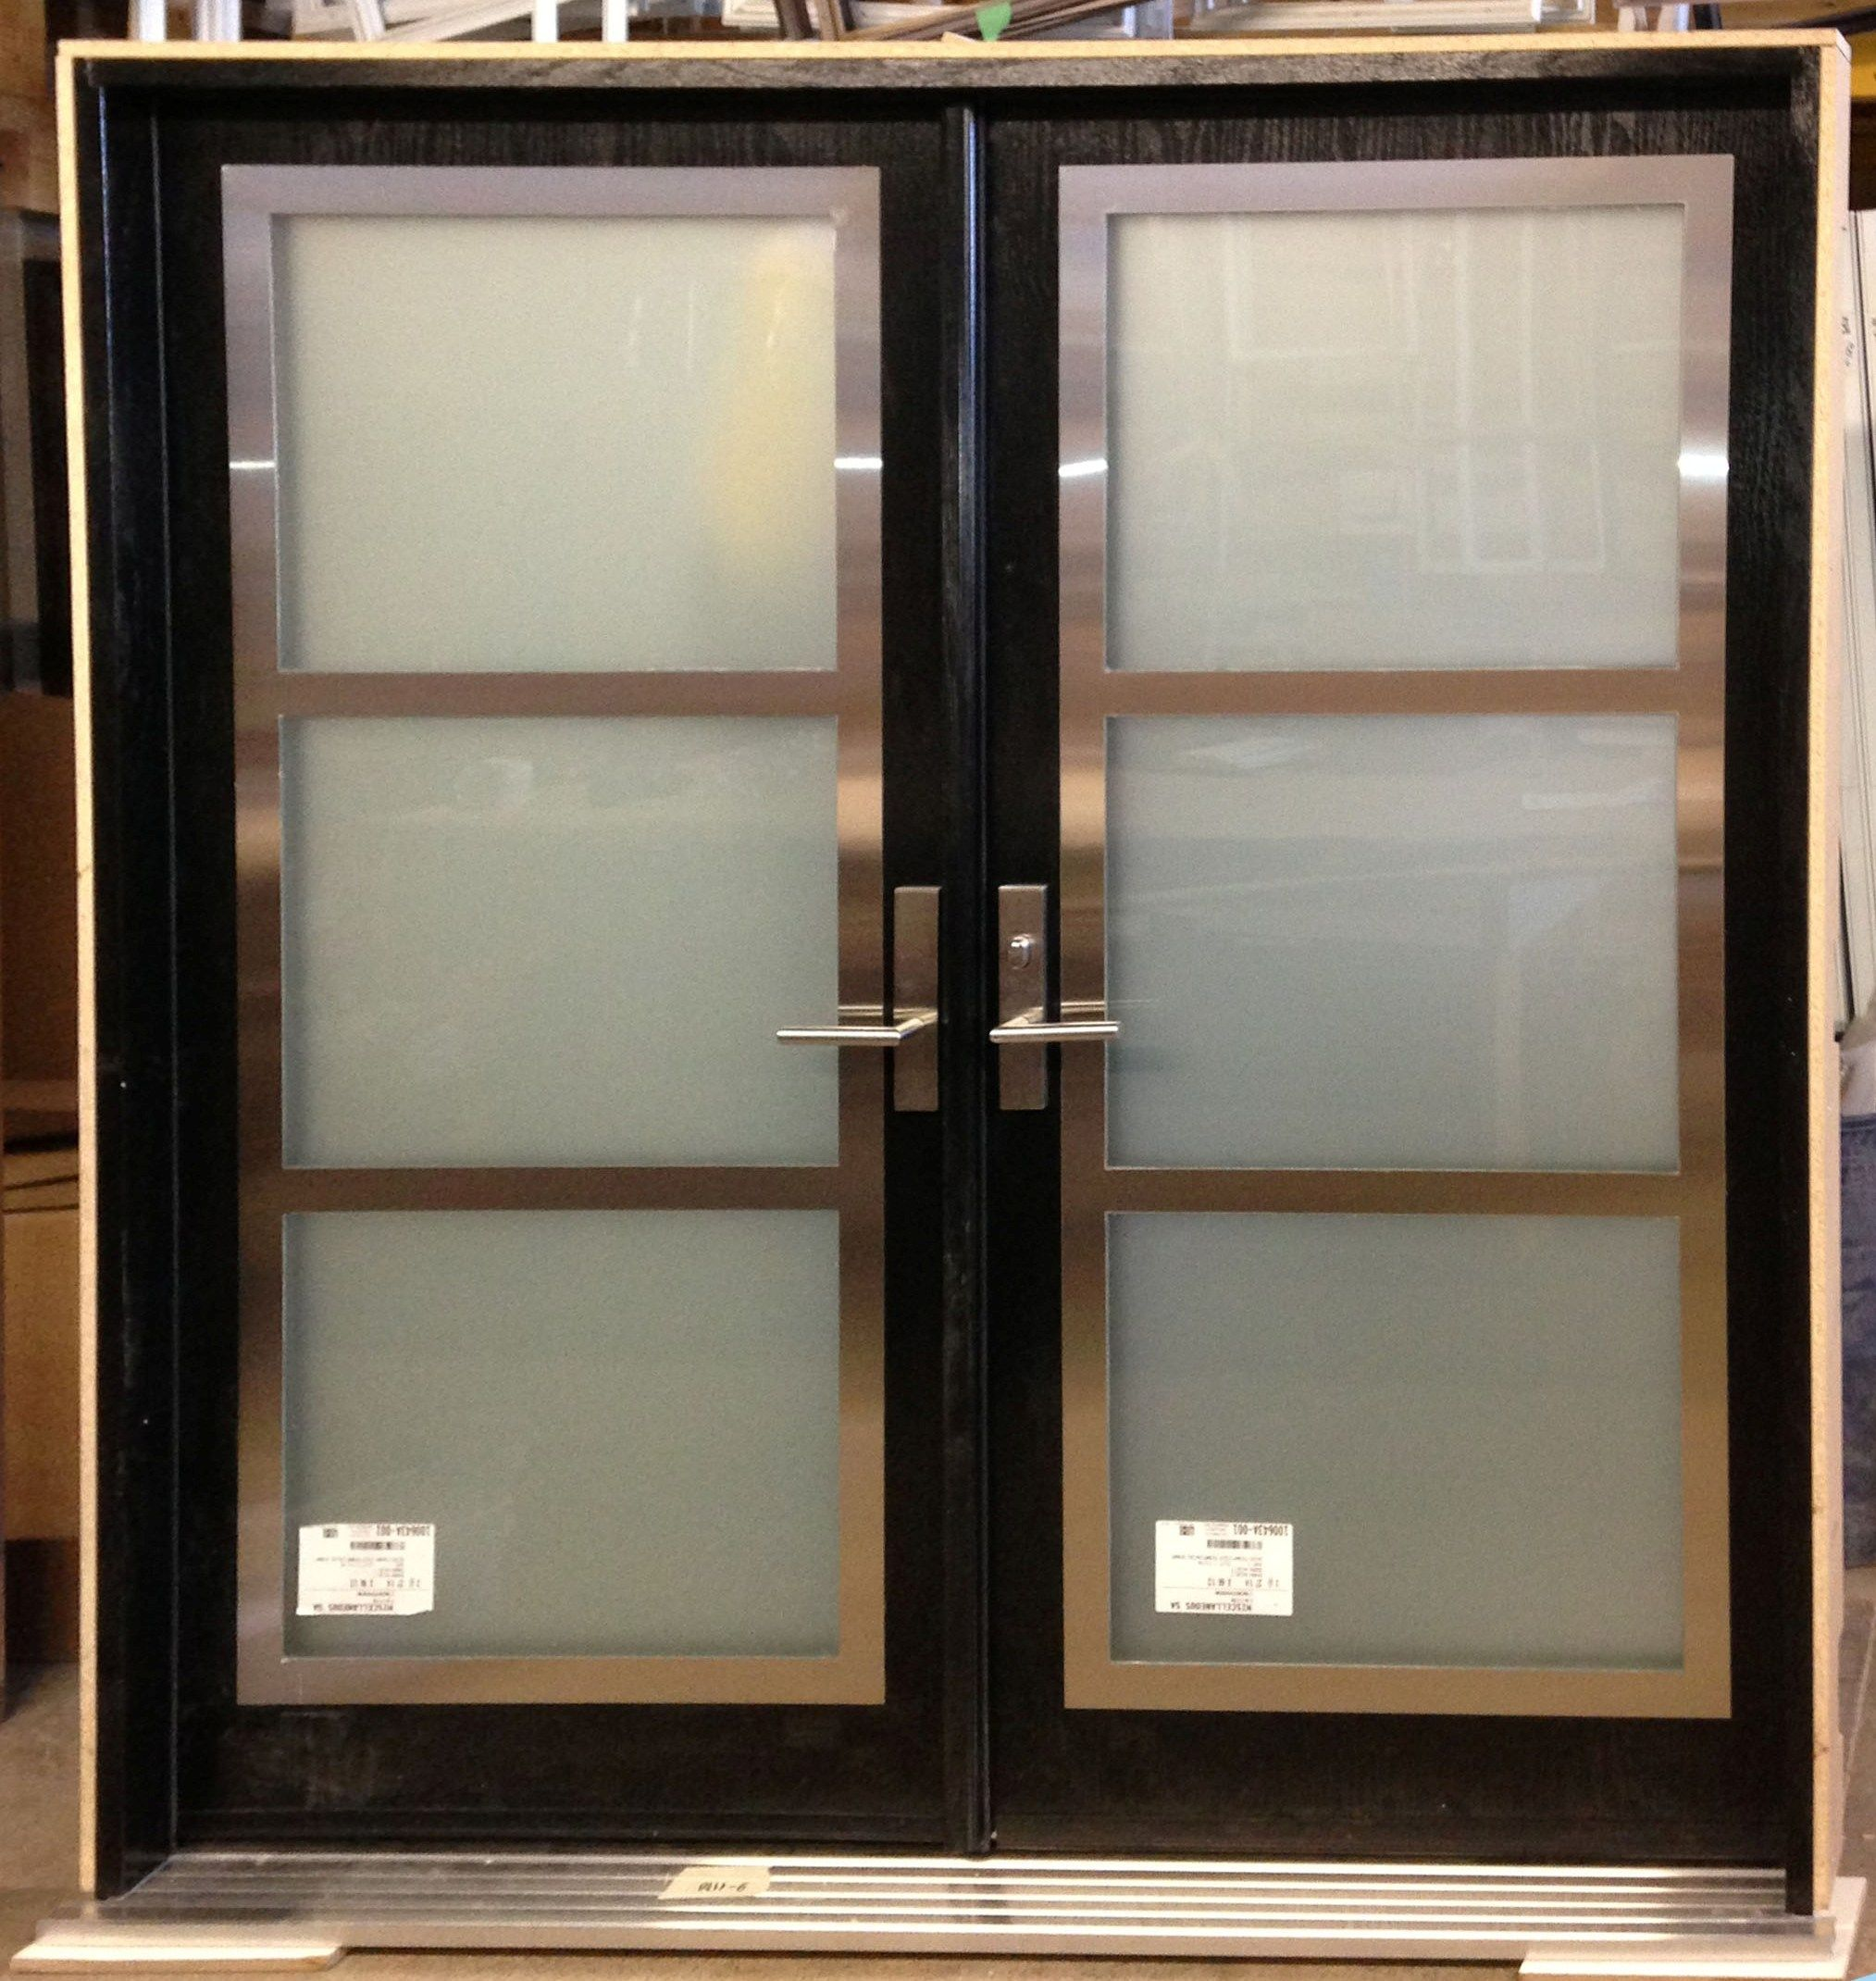 Double entry door with stainless steel frame on top of for Modern entrance door design